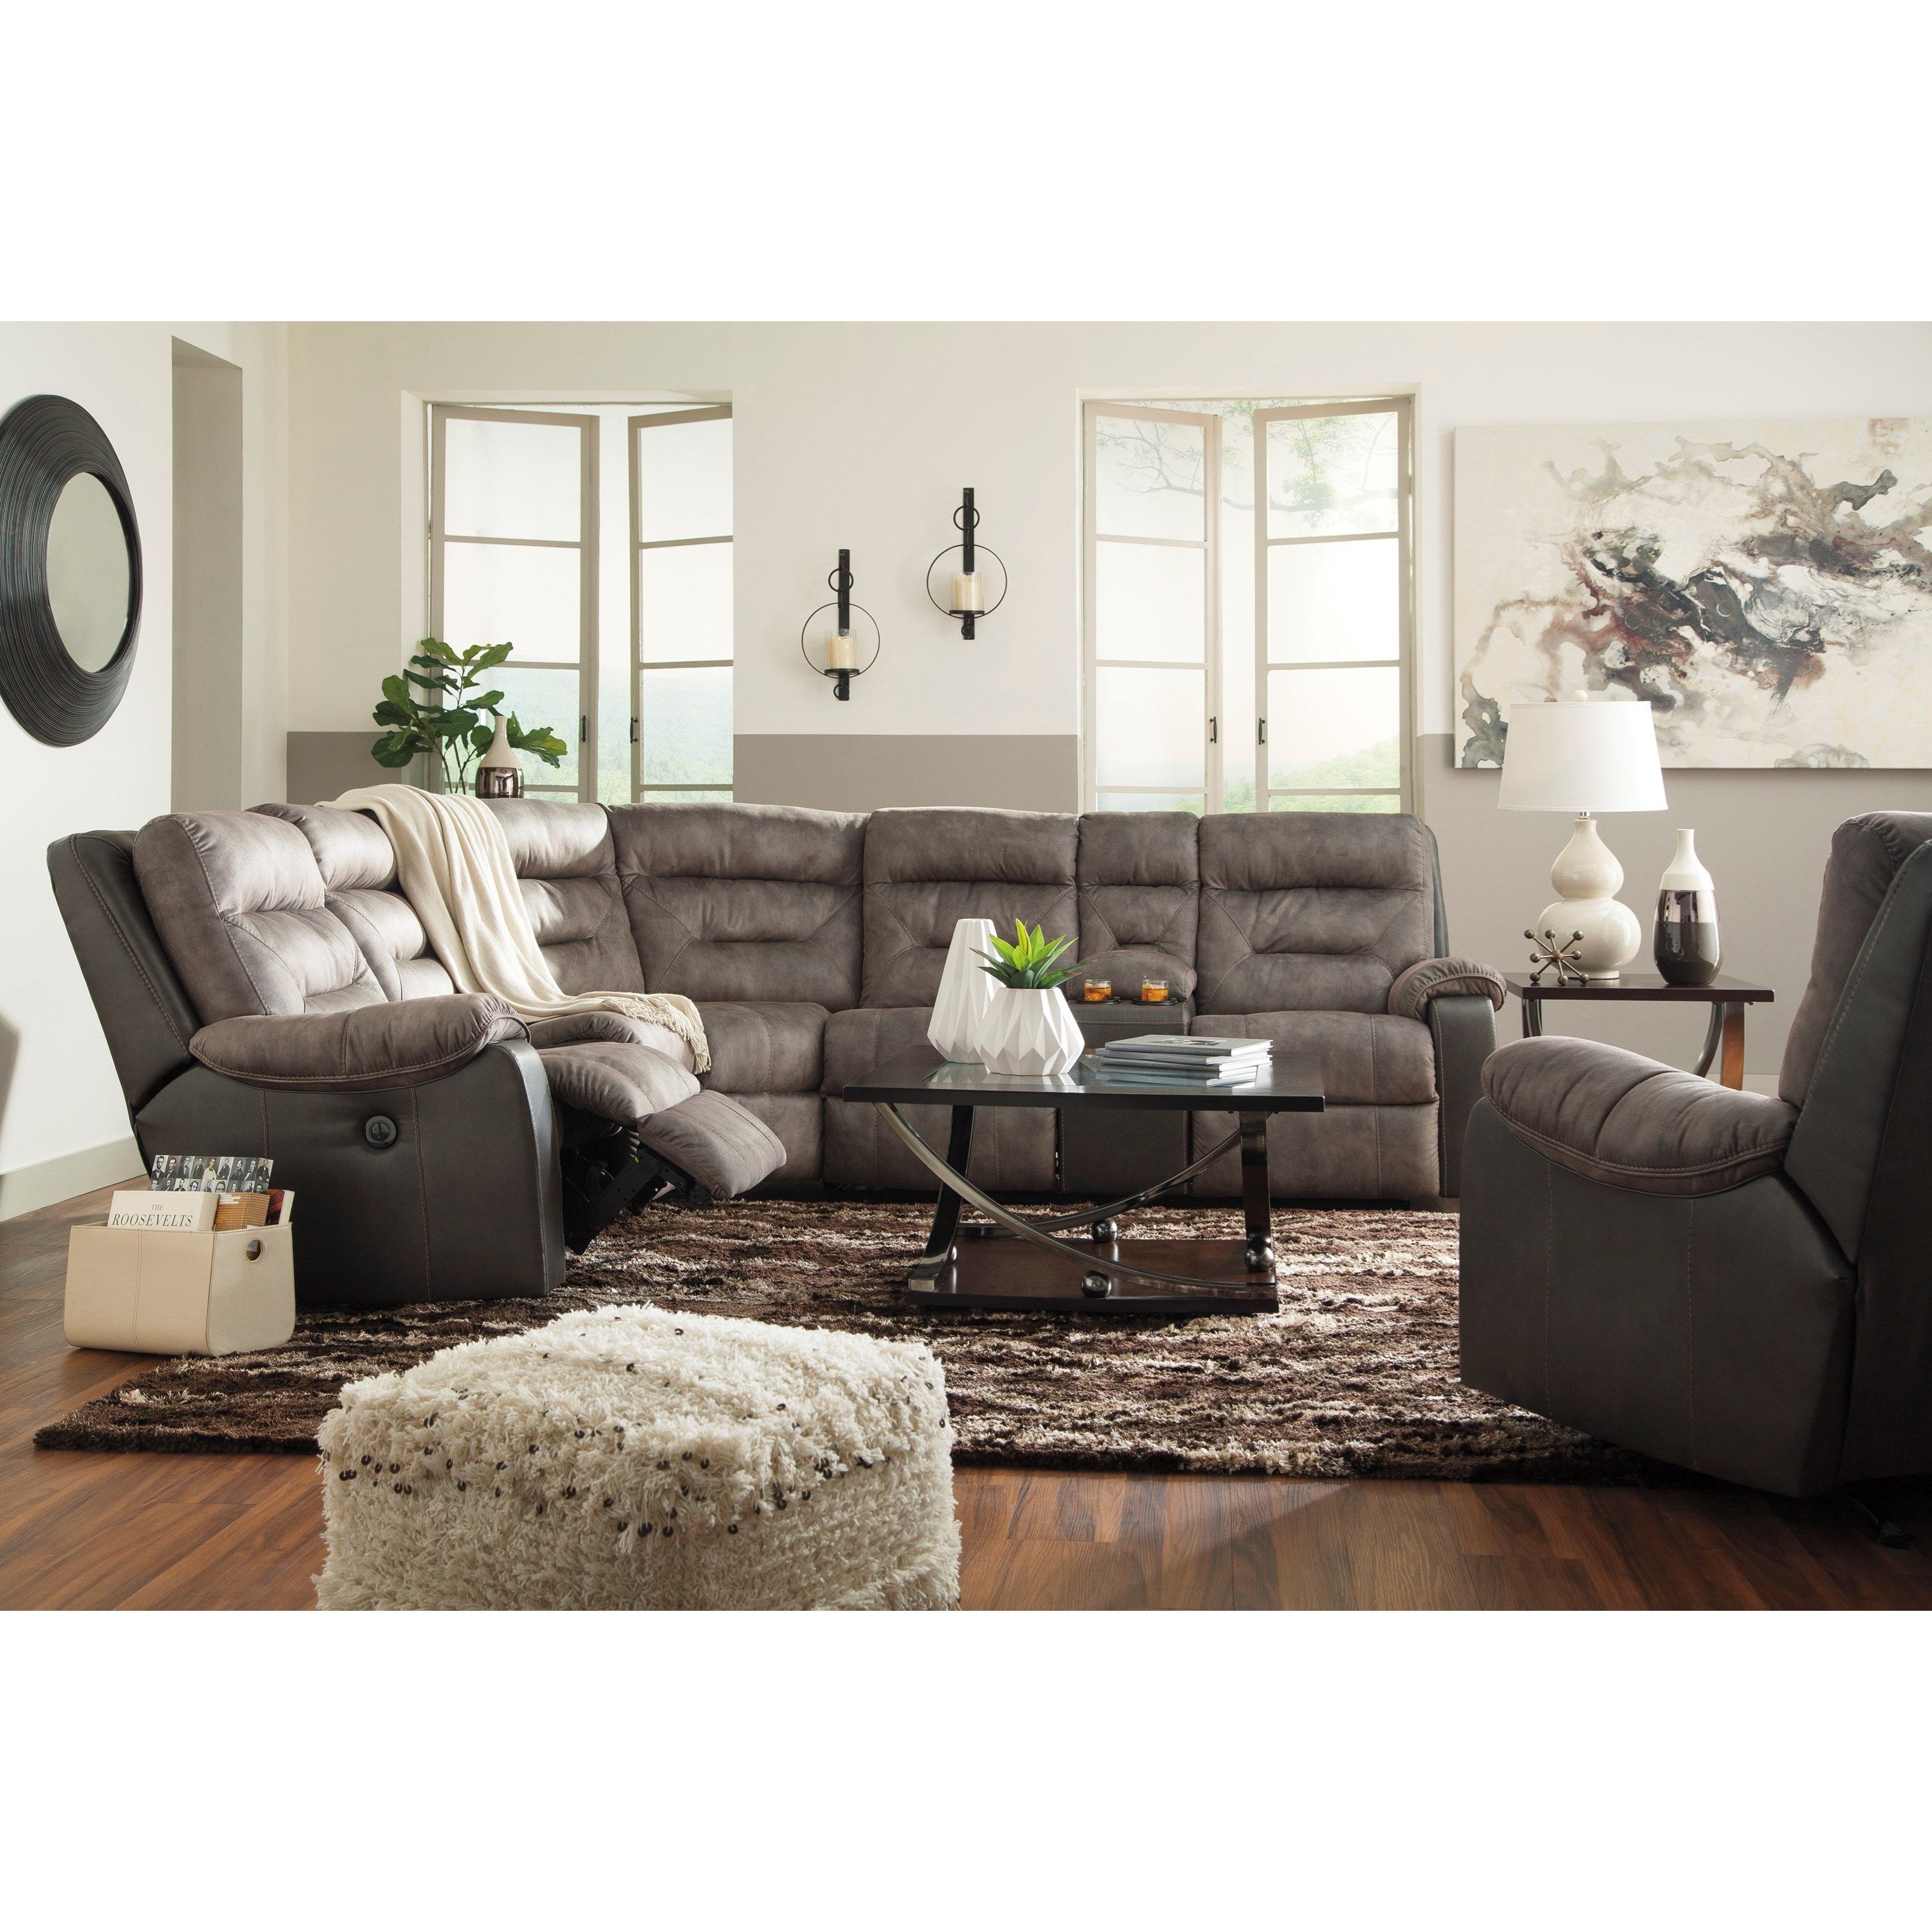 Benchcraft hacklesbury reclining living room group for Living room furniture groups